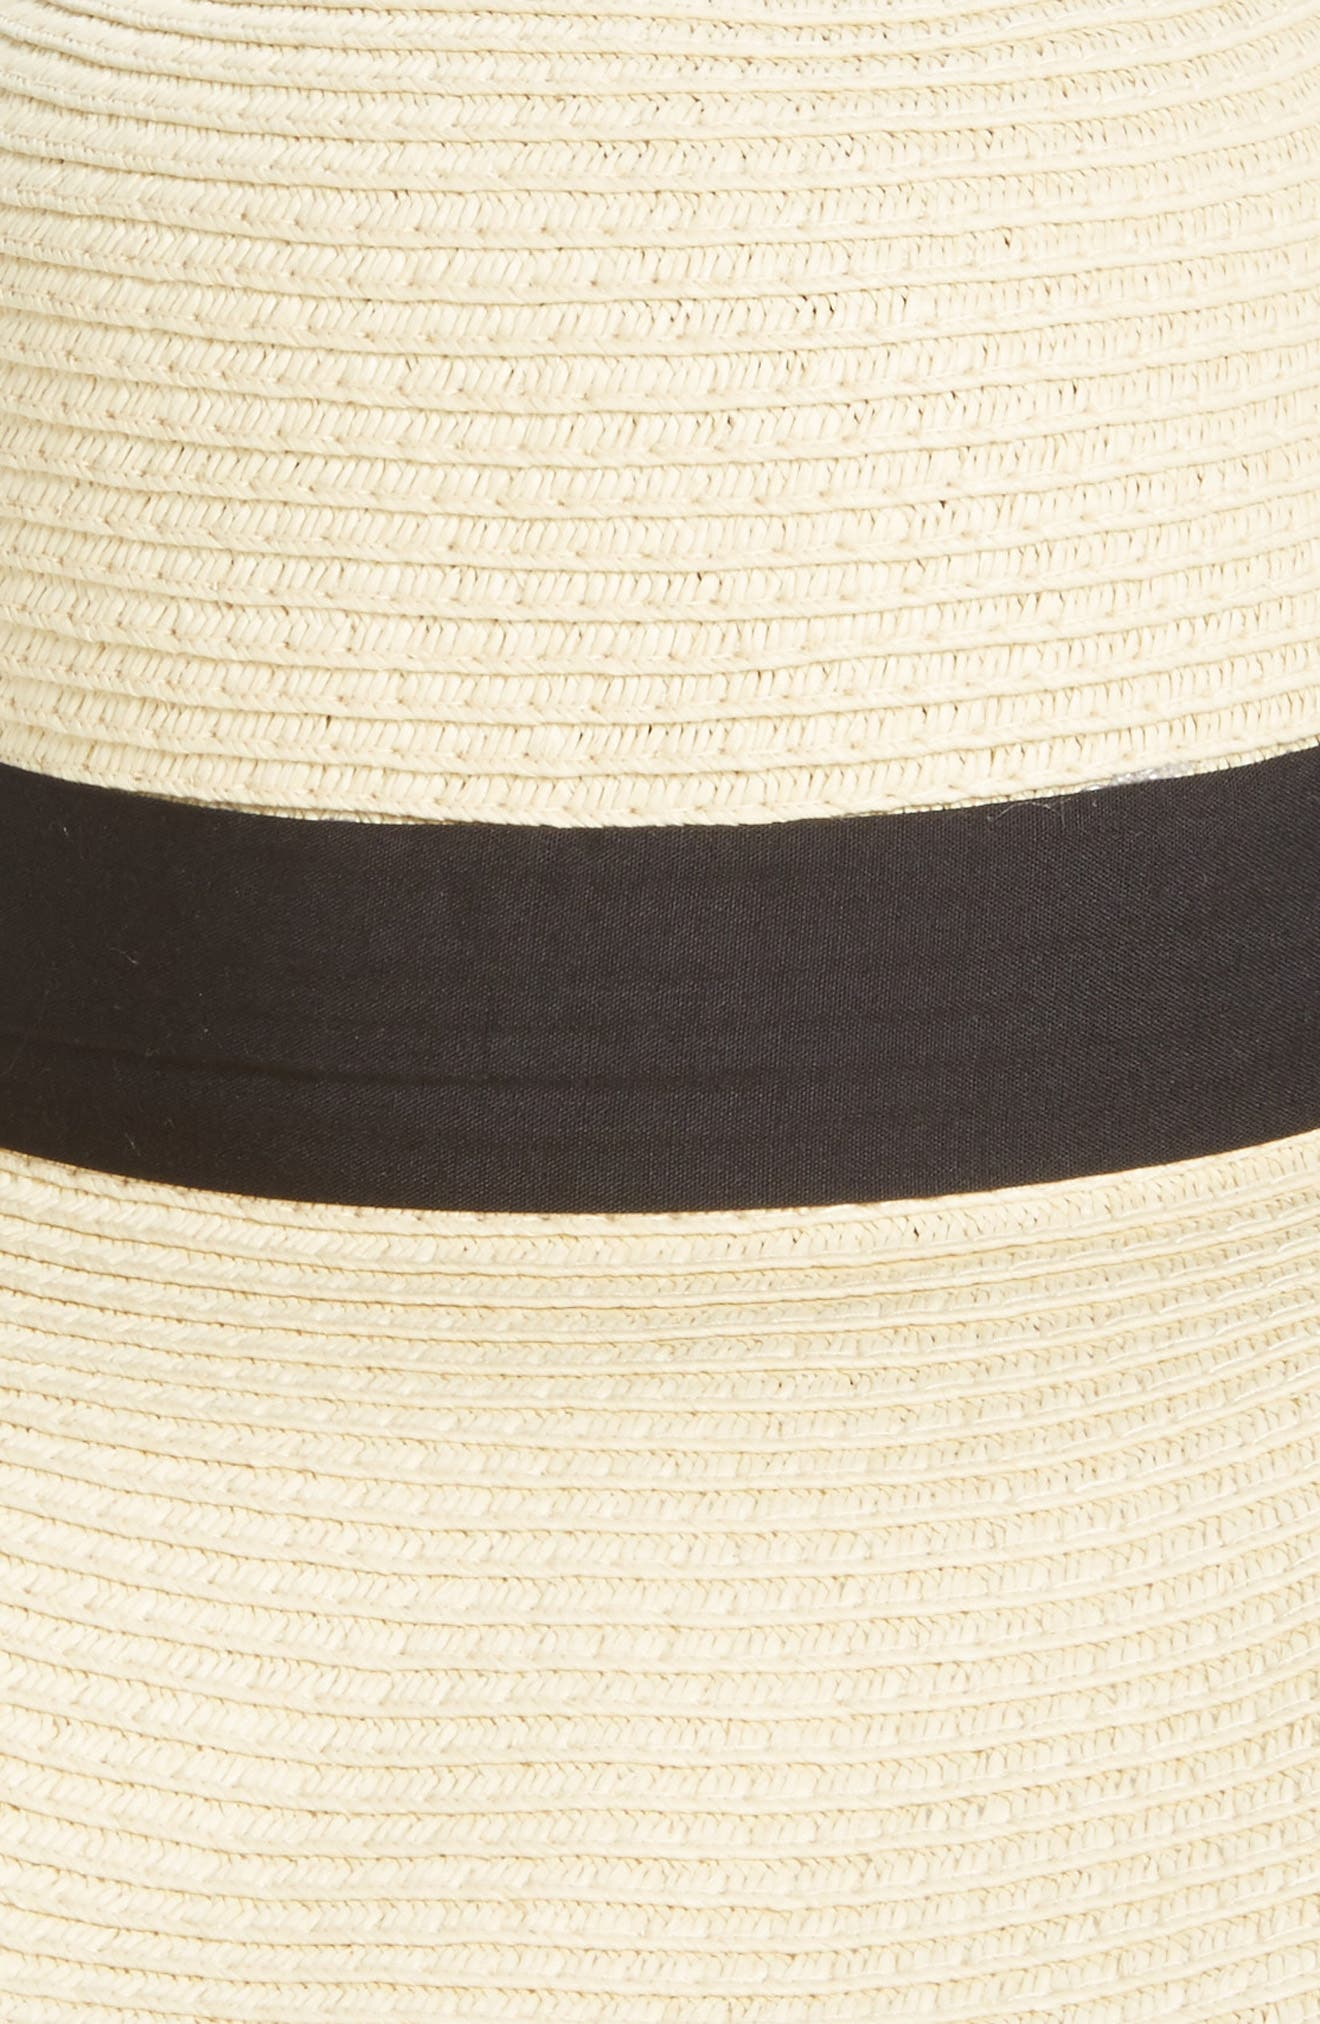 Bow Band Floppy Straw Hat,                             Alternate thumbnail 2, color,                             260